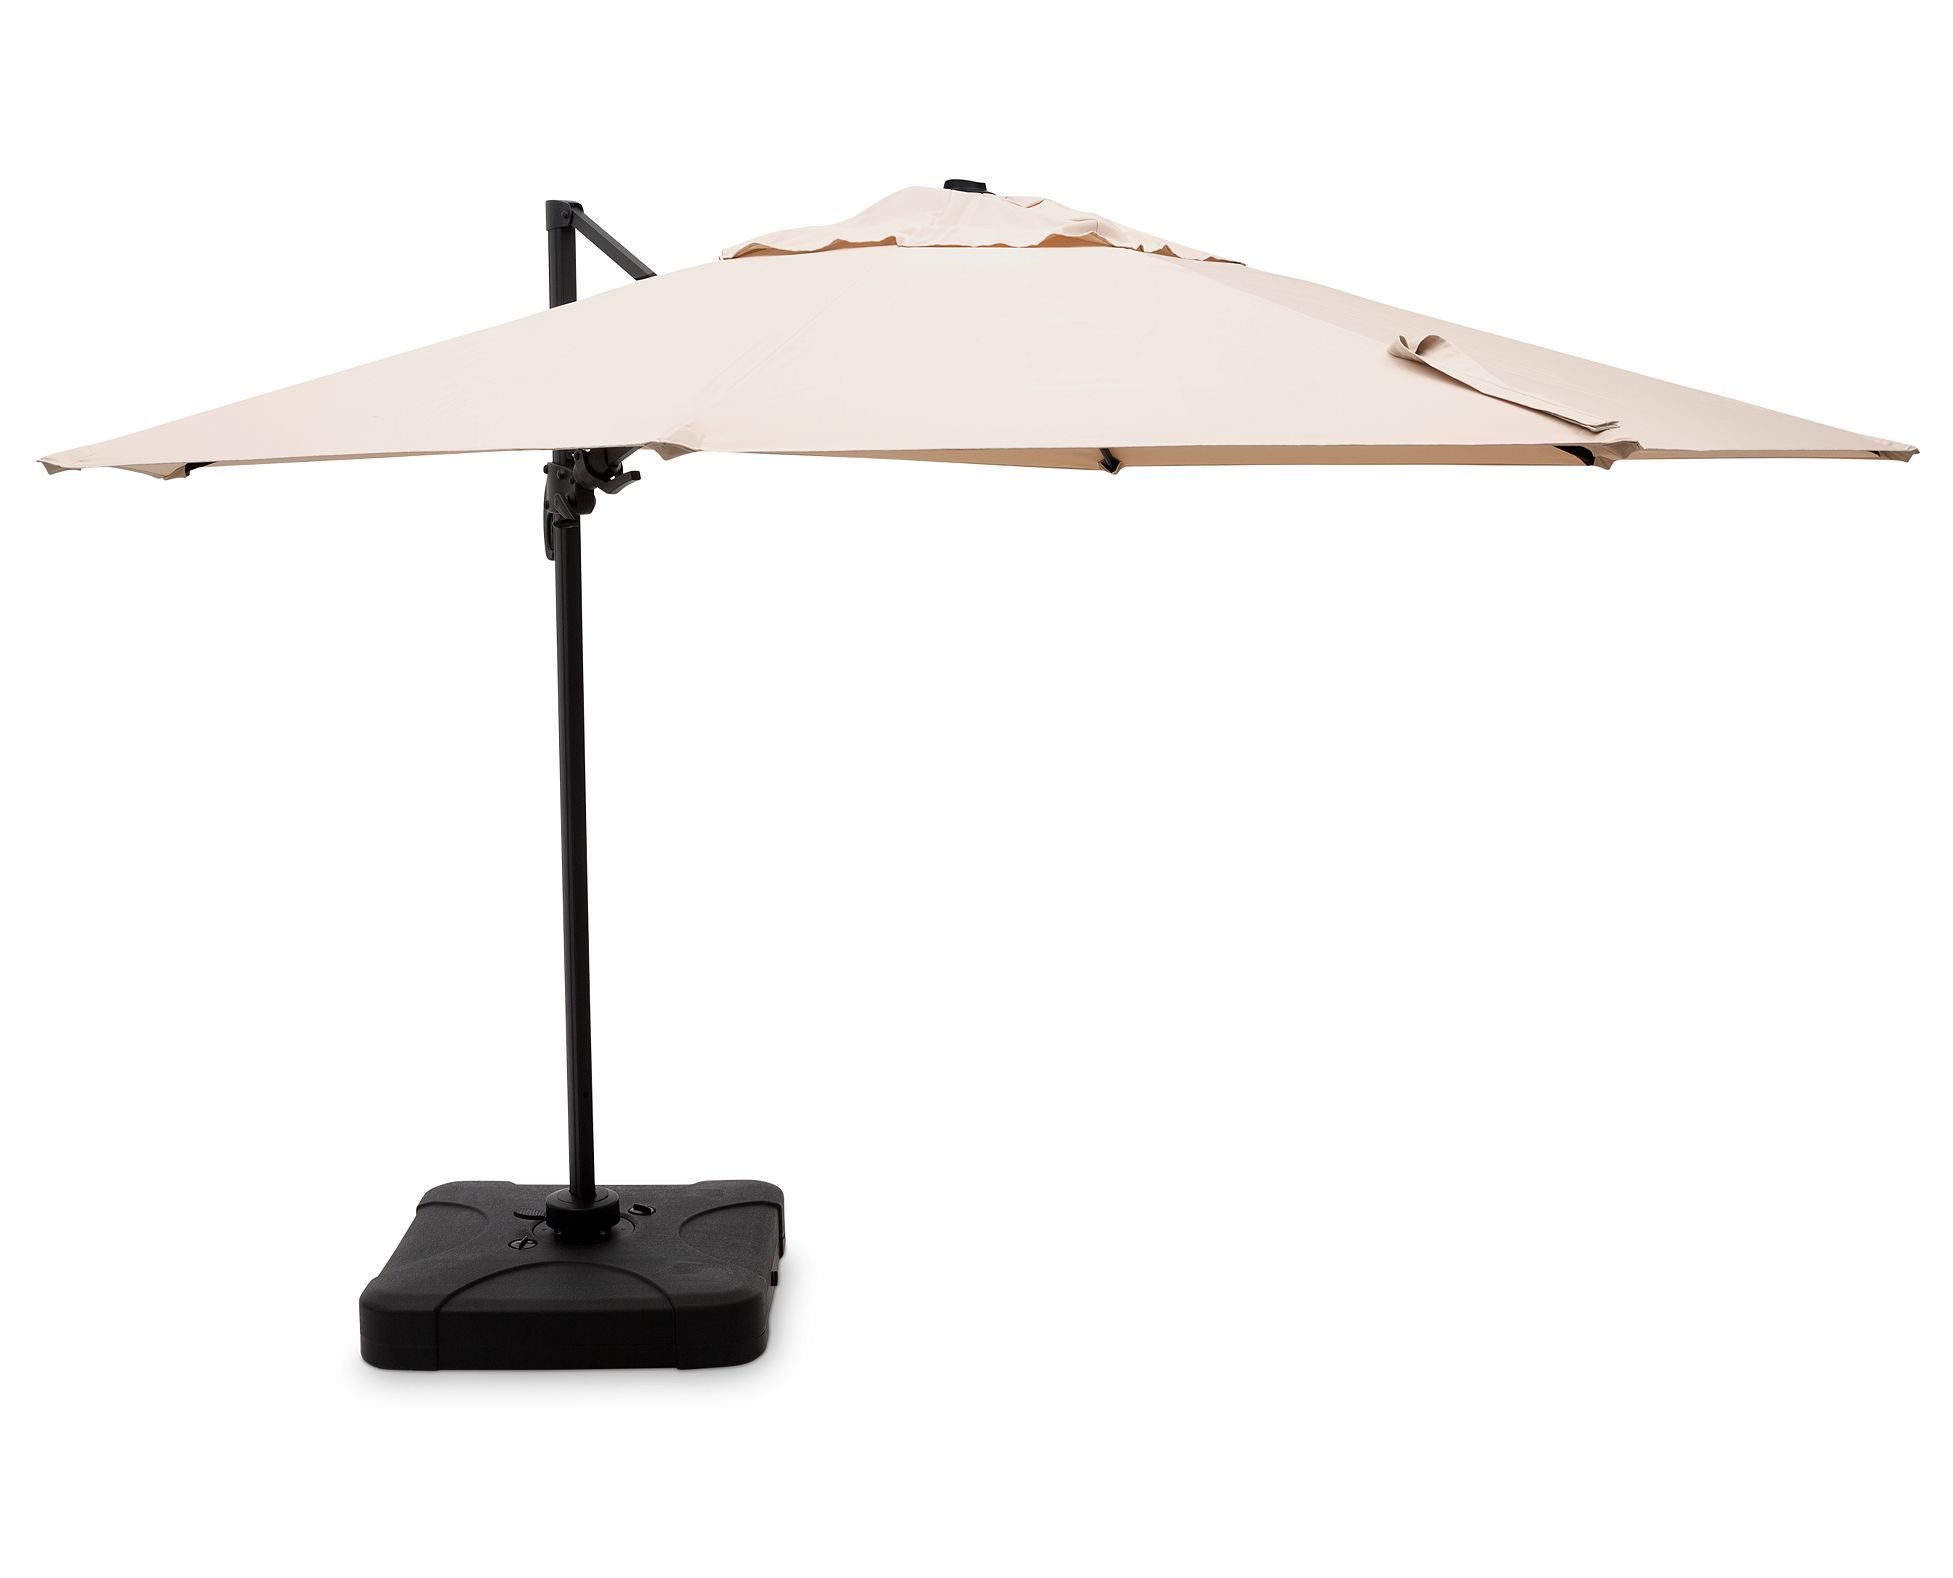 Trasimeno 11 Ft Cantilever Umbrella With Stand Is Discounted At Clearance Pricing While Supplies Last C Rectangular Patio Umbrella Patio Umbrella Umbrella